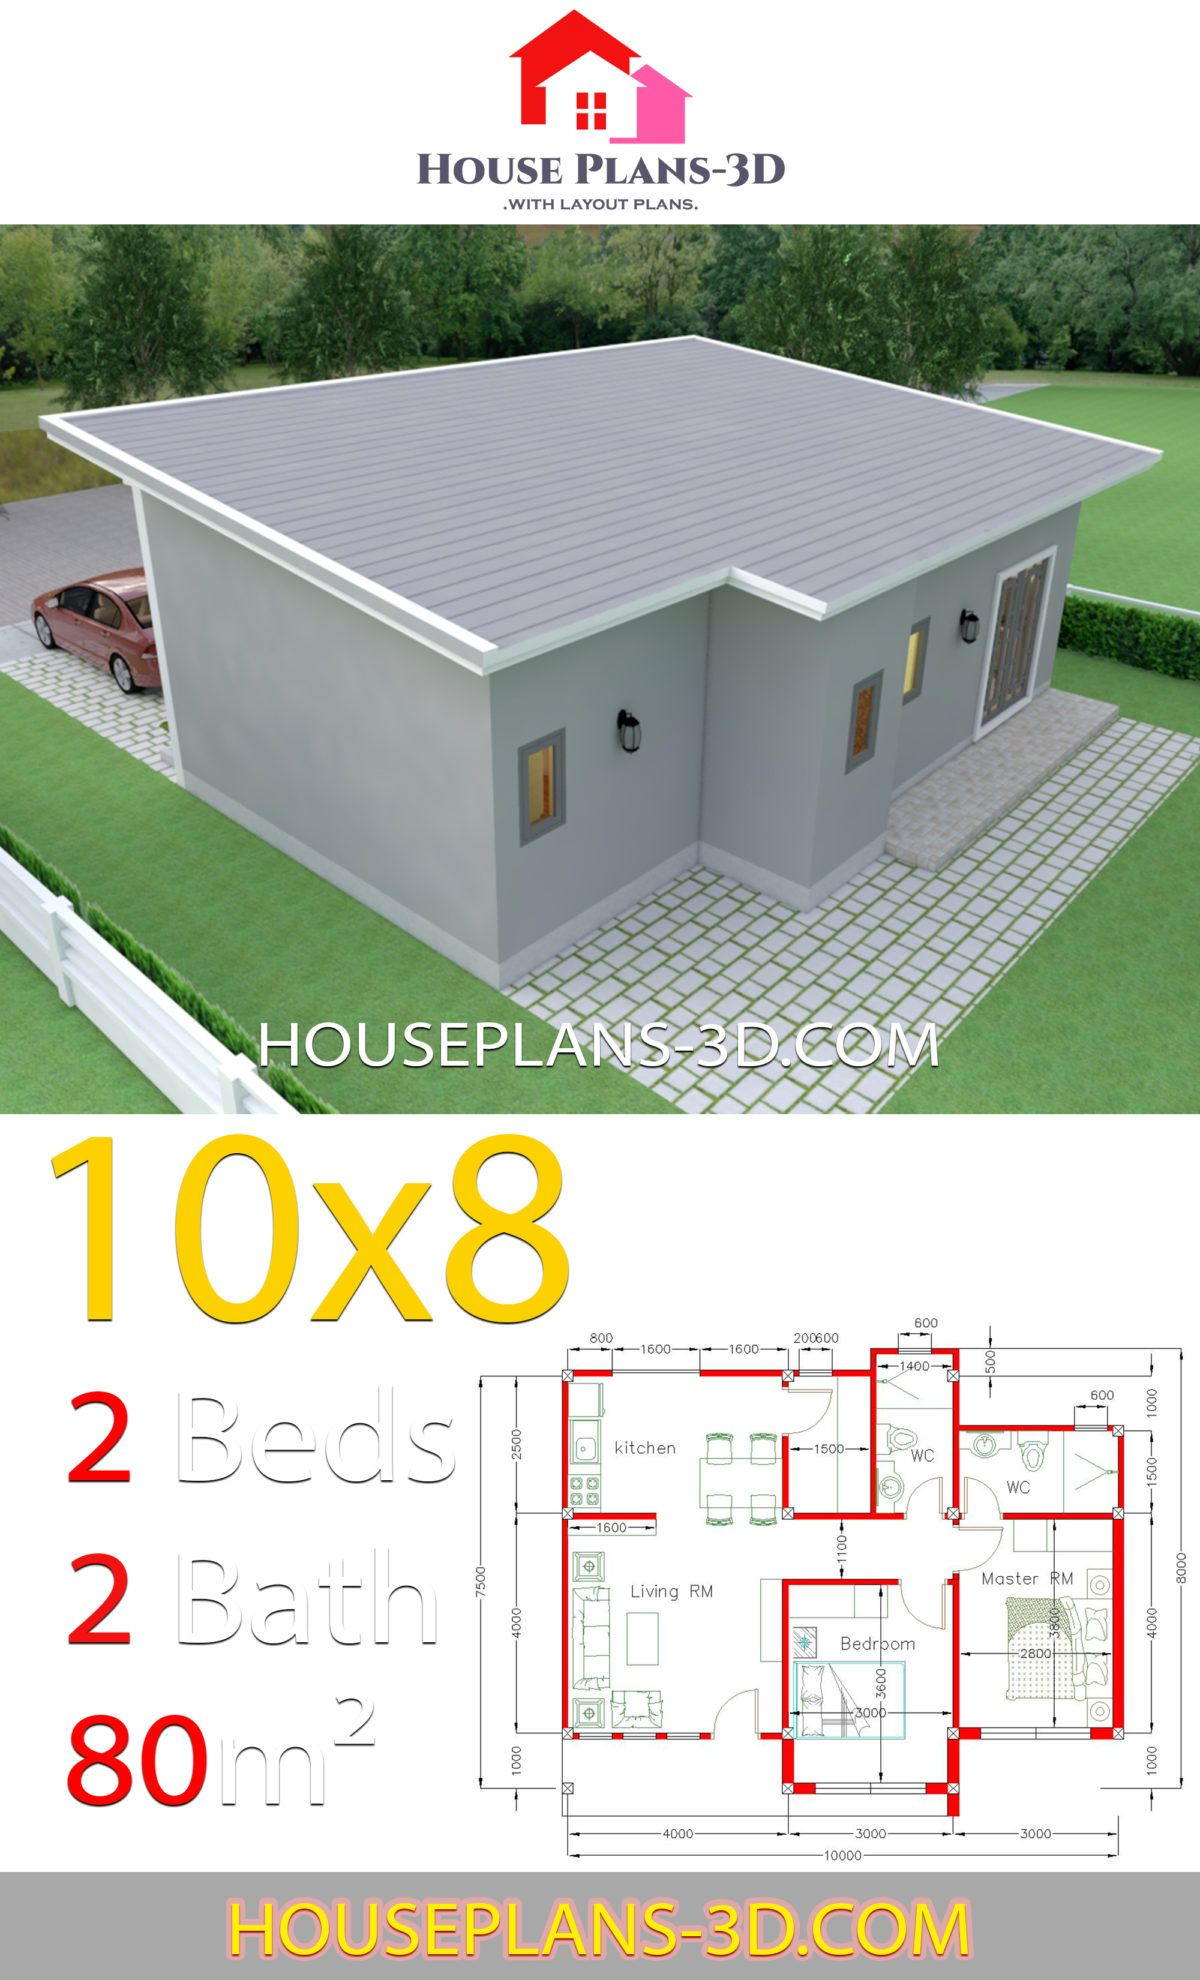 House Plans 10x8 With 2 Bedrooms Shed Roof House Plans 3d Shed Roof Design House Plans Small House Design Plans